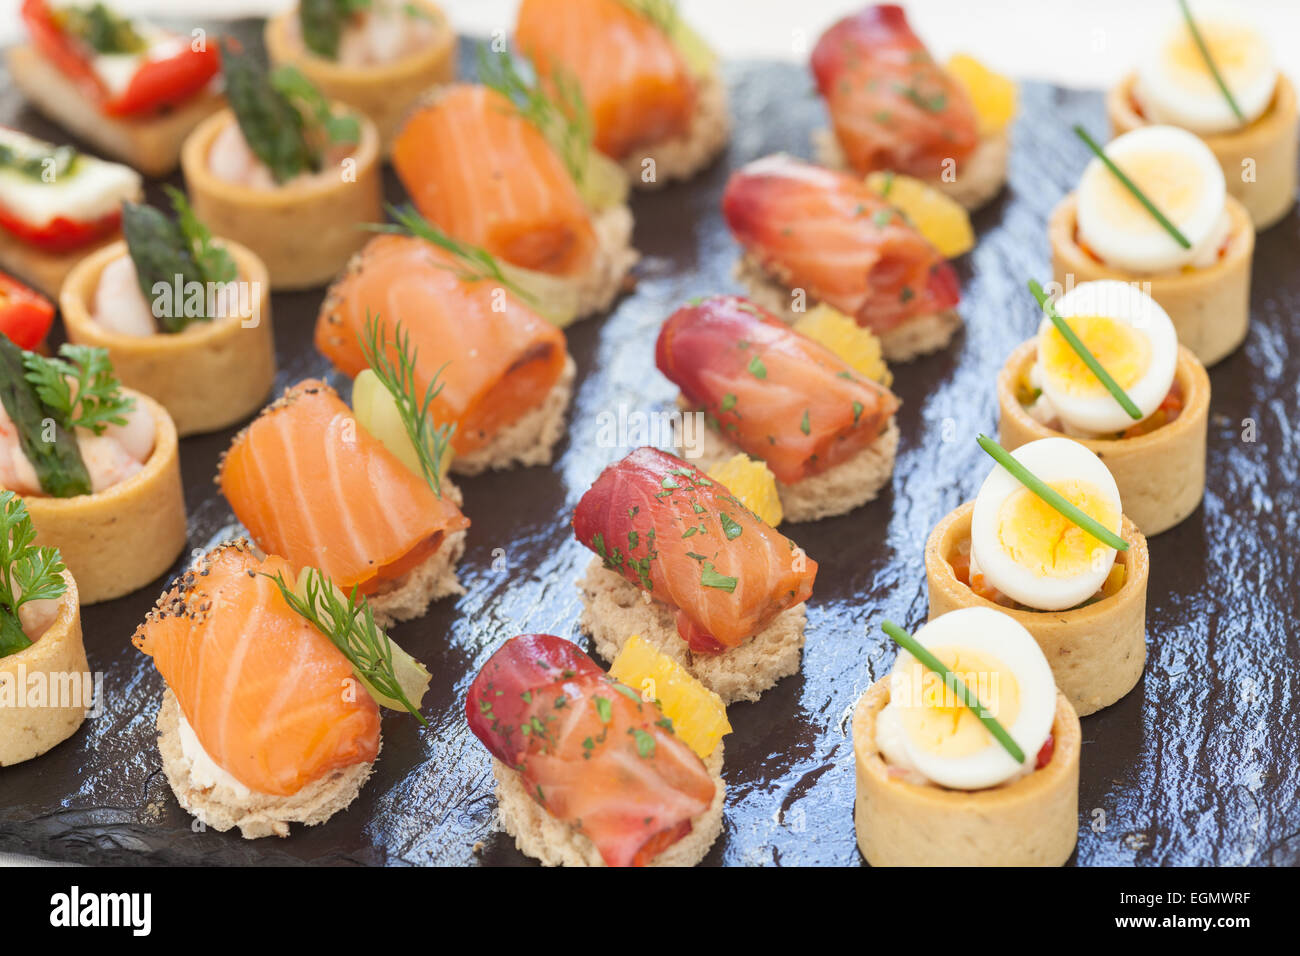 Canapes served on a slate 'plate' - Stock Image